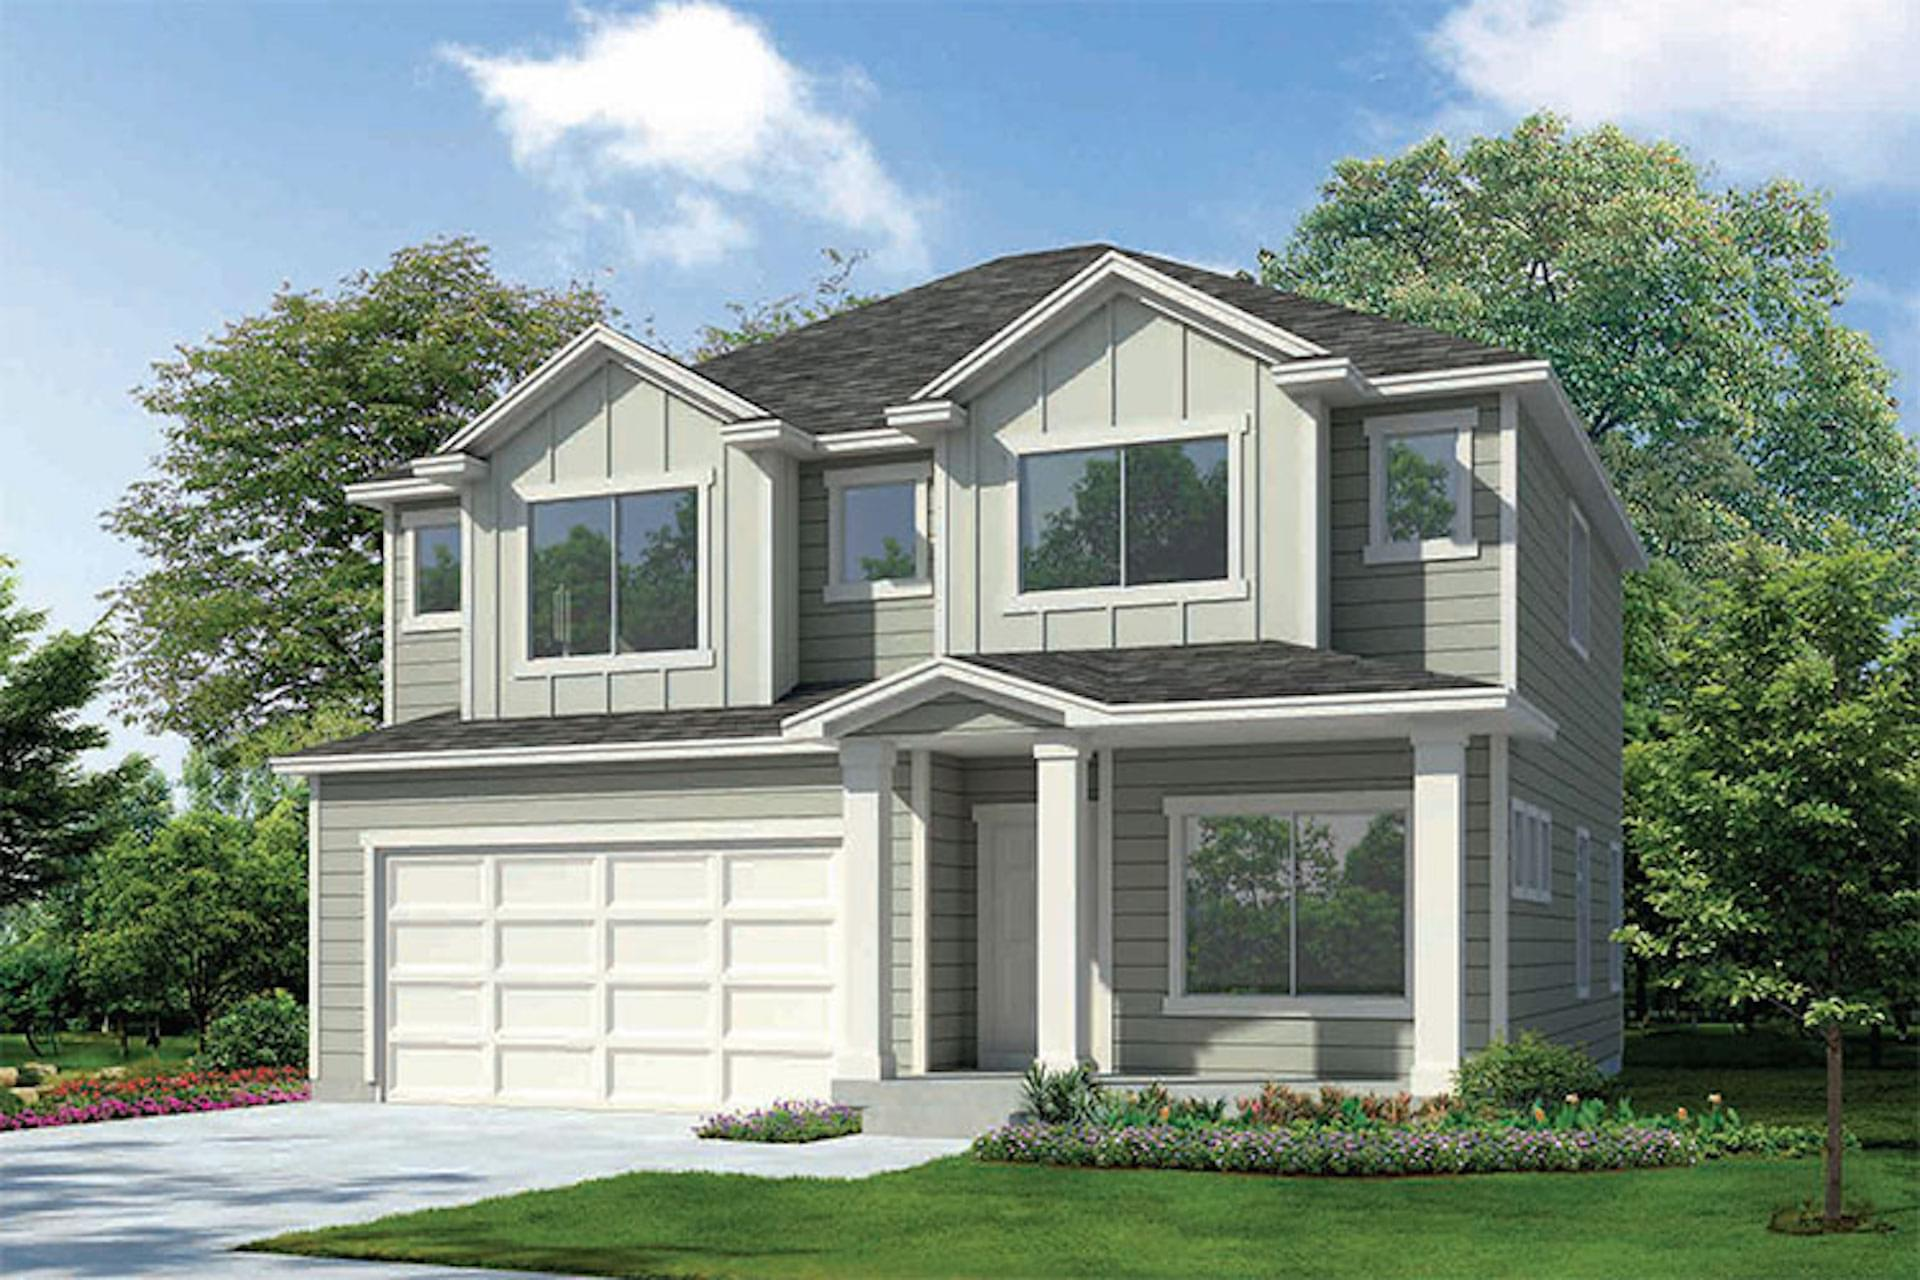 Oquirrh new home in Eagle Mountain, UT